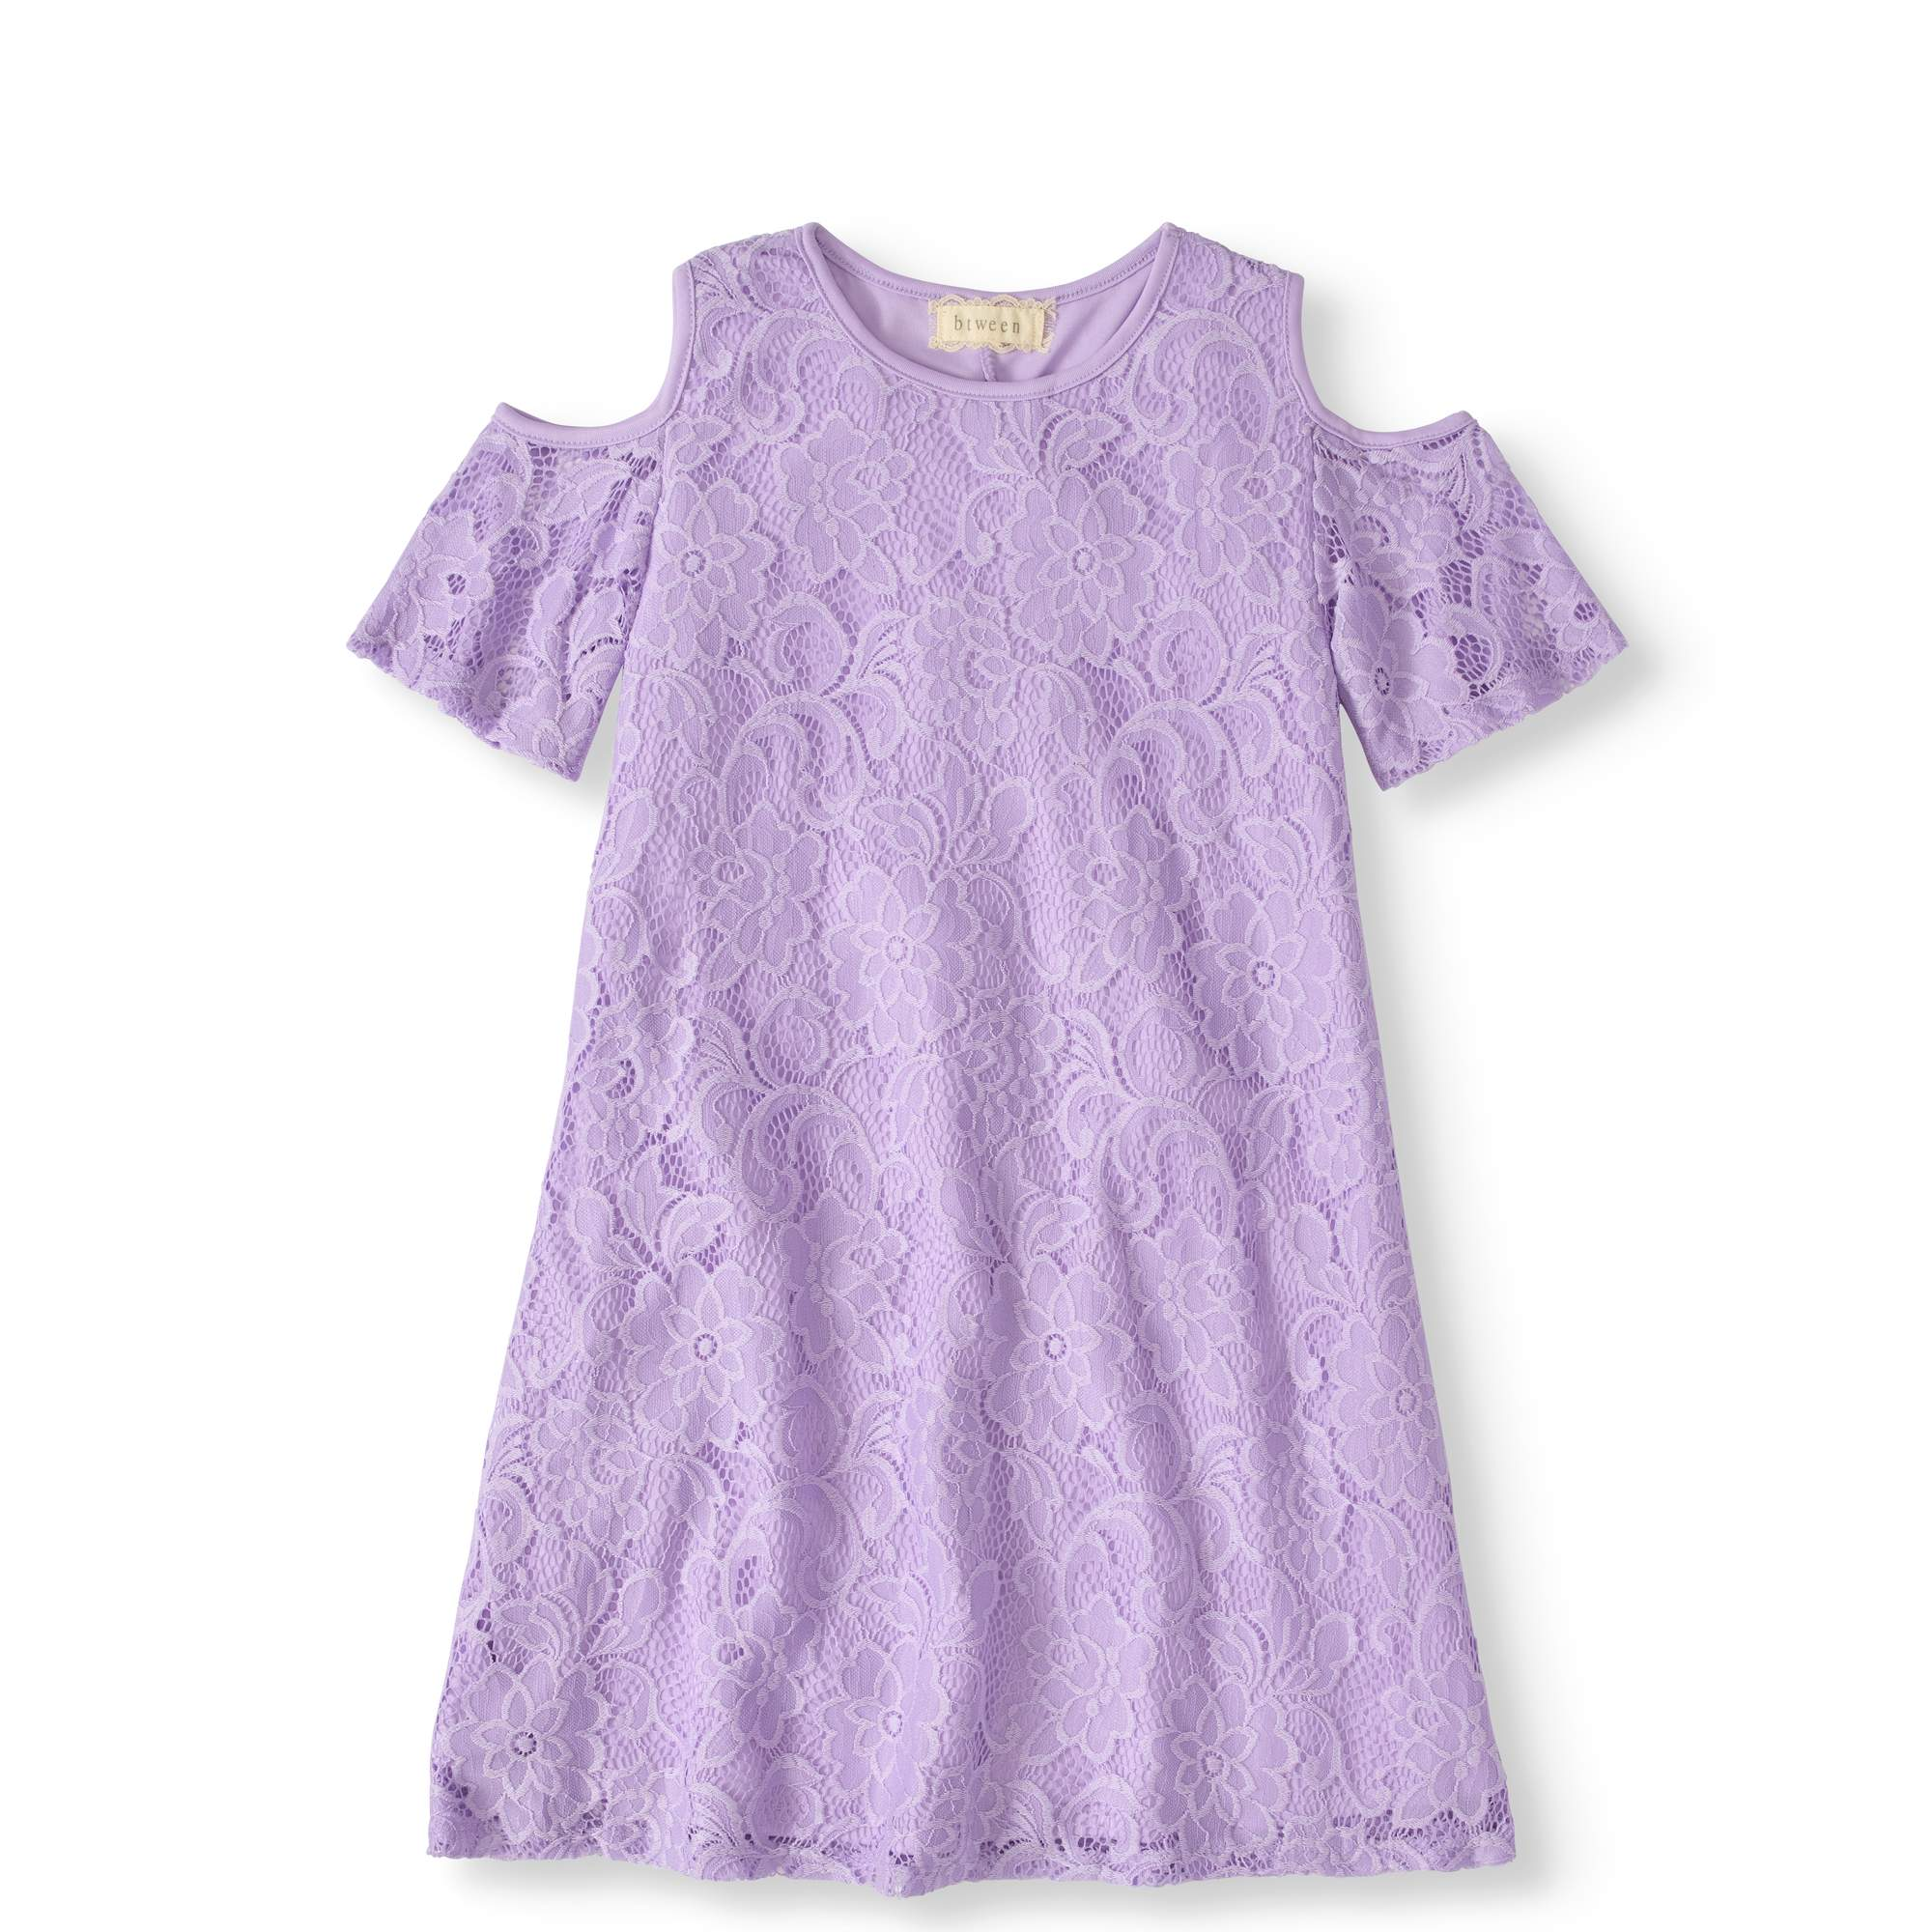 Girls' 7-12 Cold Shoulder Lace Swing Dress